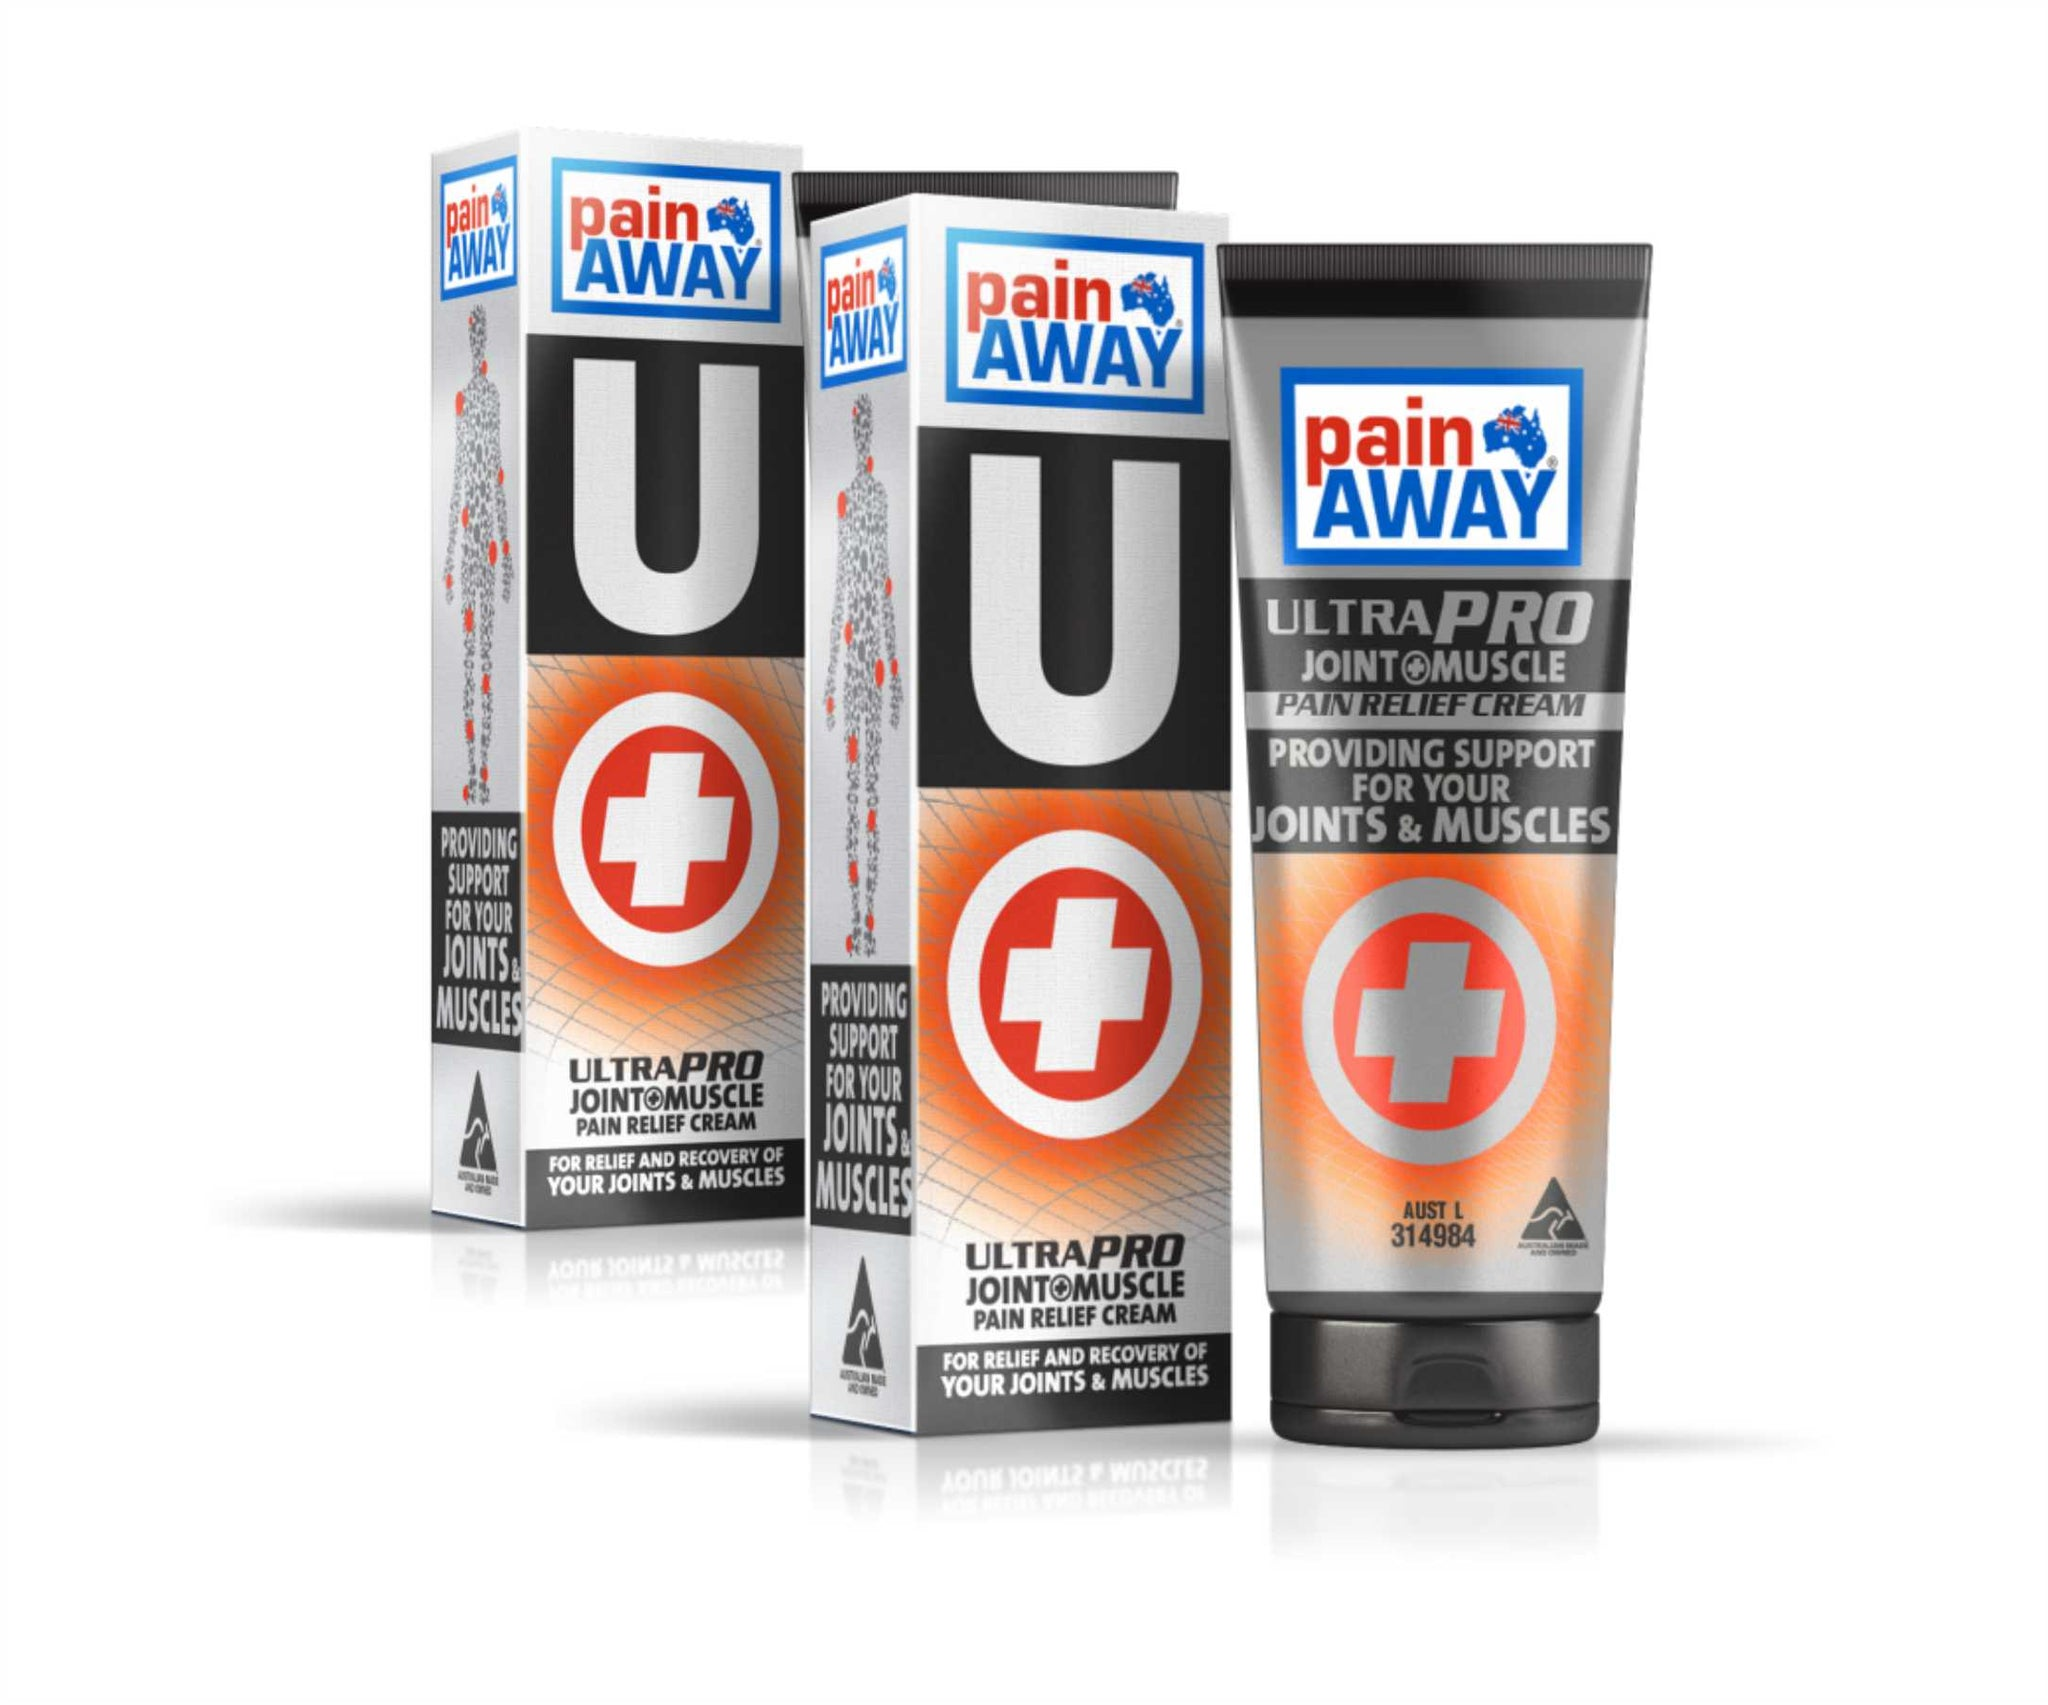 2 x PAIN AWAY ULTRA PRO - JOINT & MUSCLE<BR> PAIN RELIEF CREAM 125G TUBE